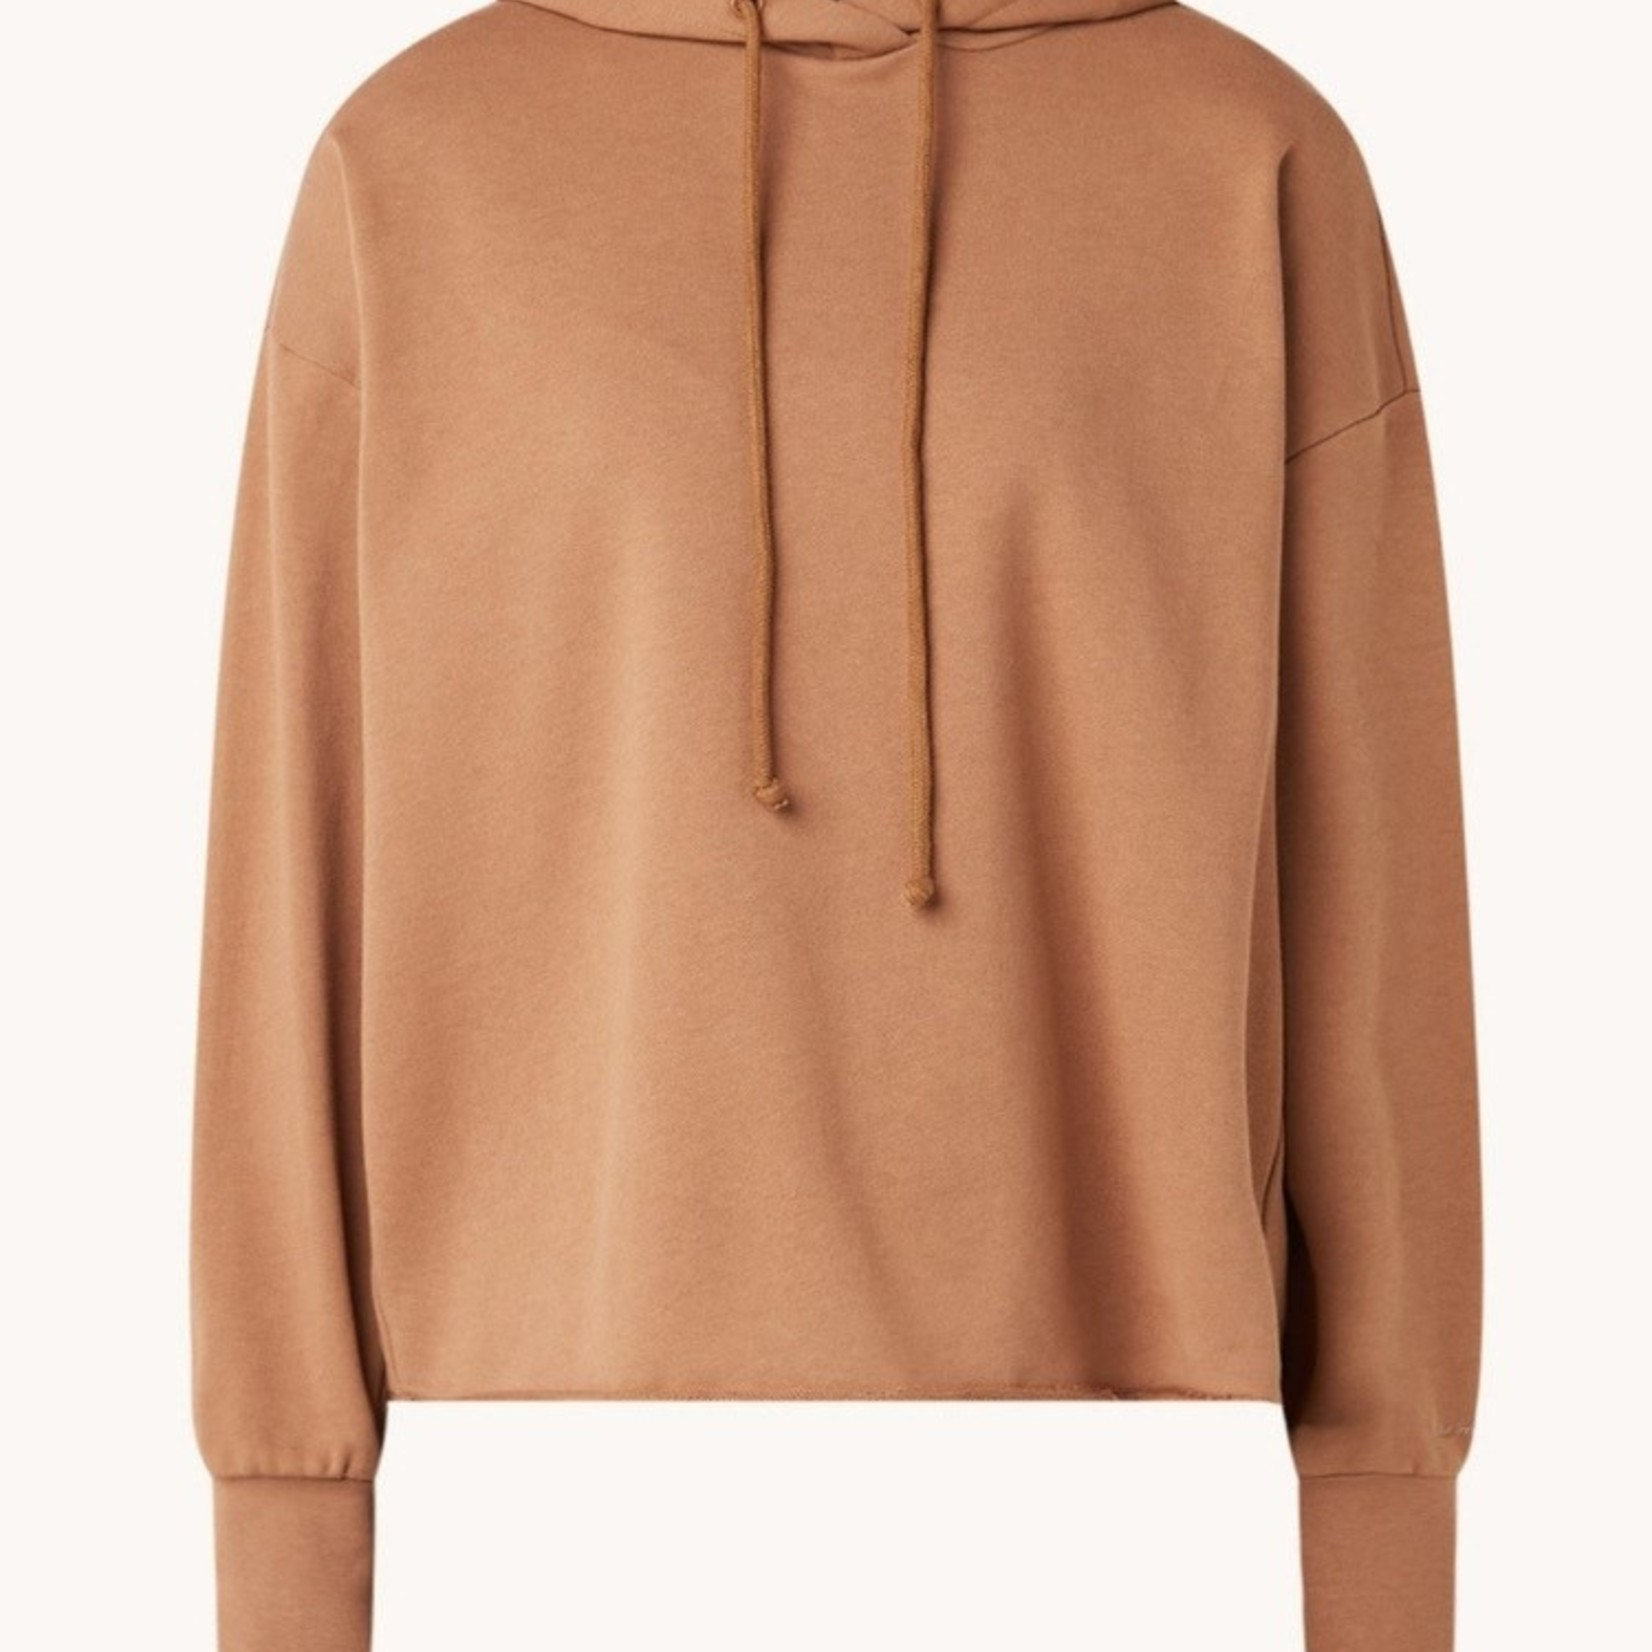 SMITH & SOUL HOODIE CROPPED